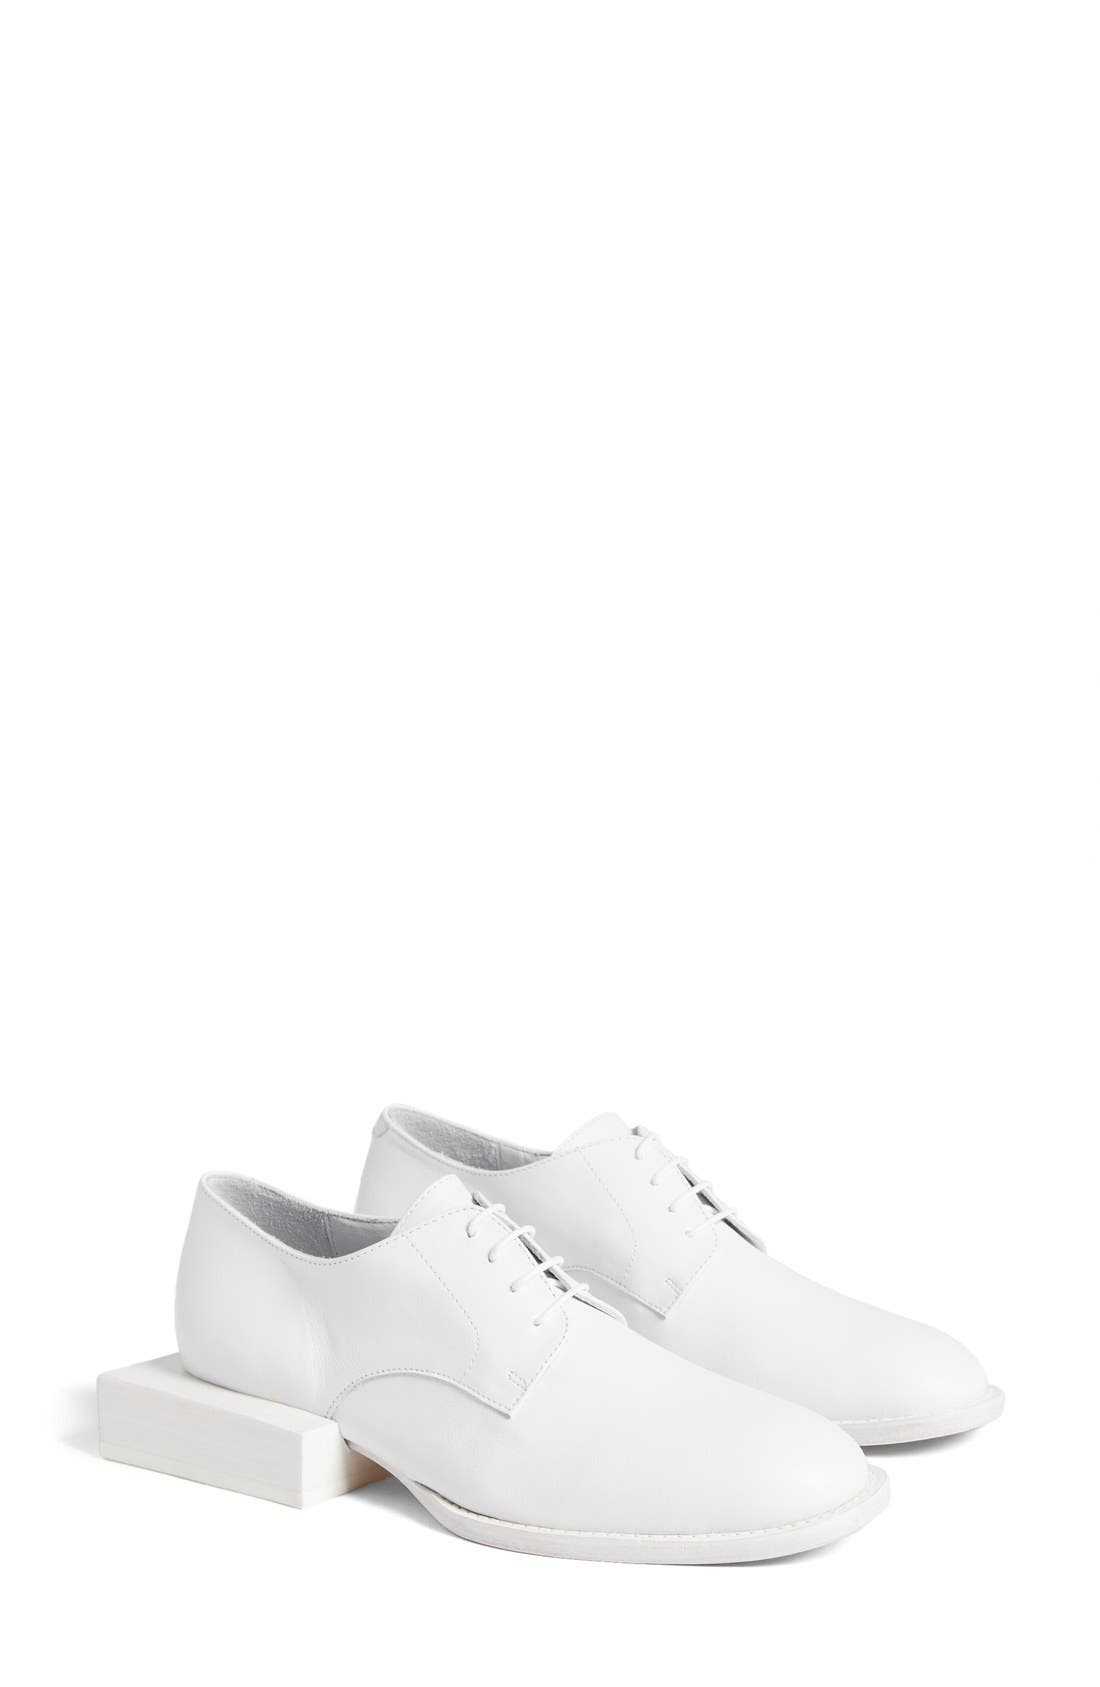 Alternate Image 1 Selected - Jacquemus 'Les Chaussures Clown' Oxford (Women)